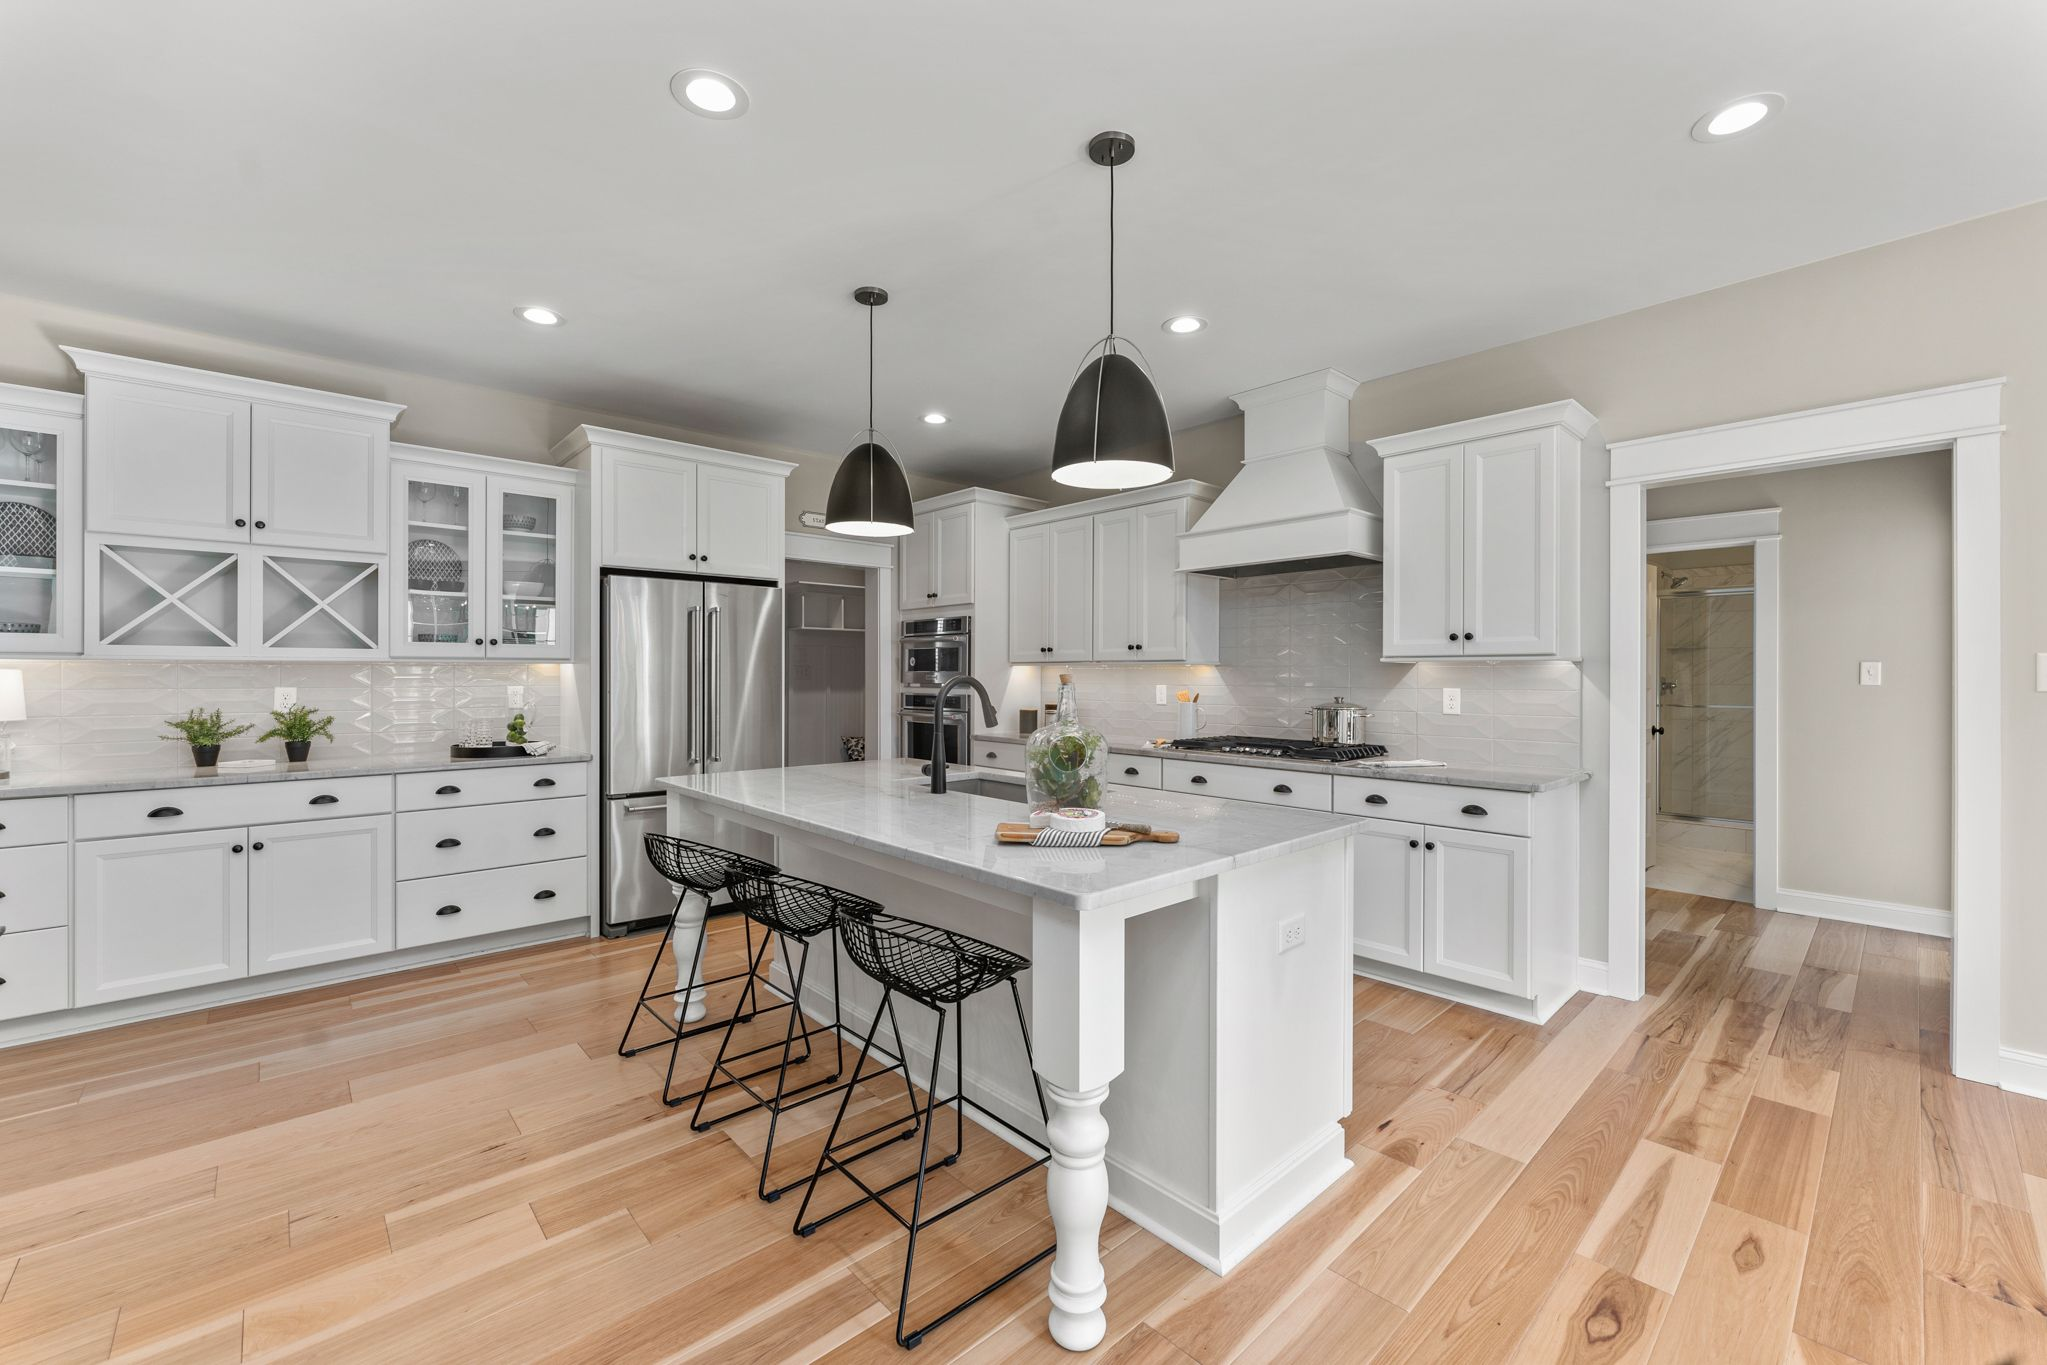 Kitchen featured in the Stuart By Main Street Homes in Richmond-Petersburg, VA